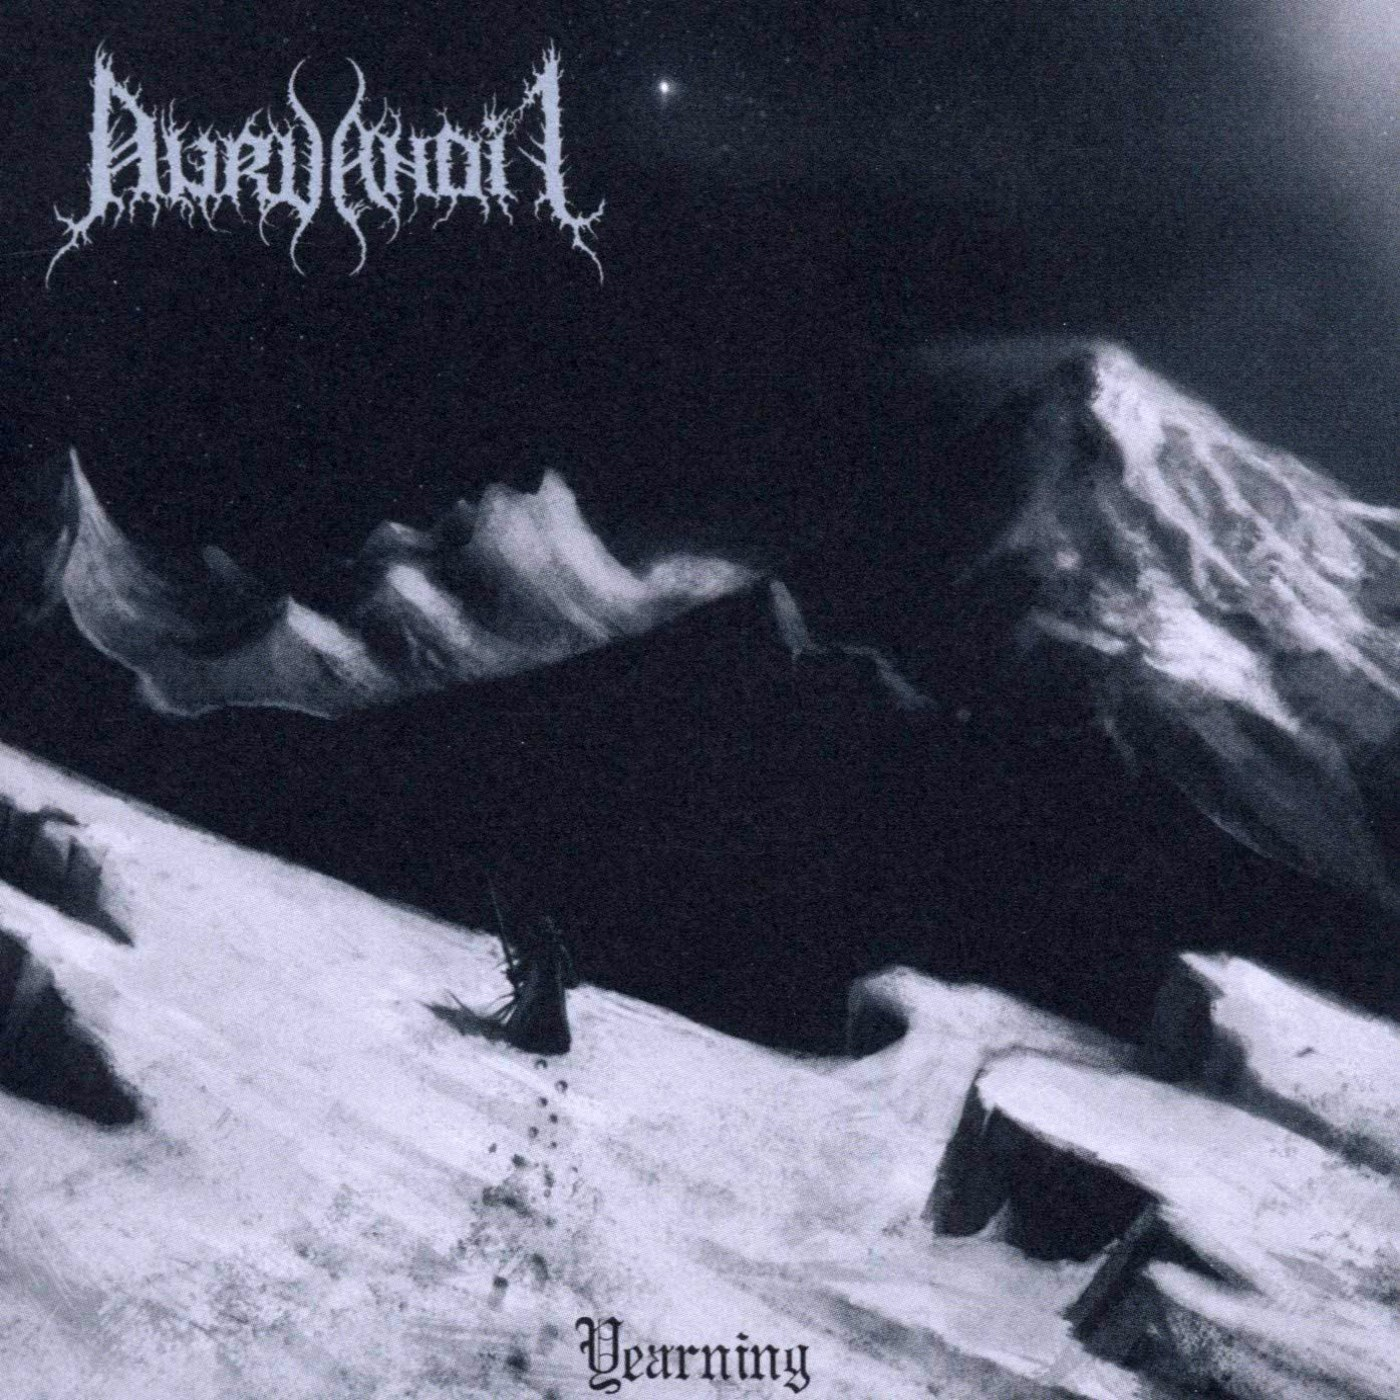 Review for Aurvandil - Yearning